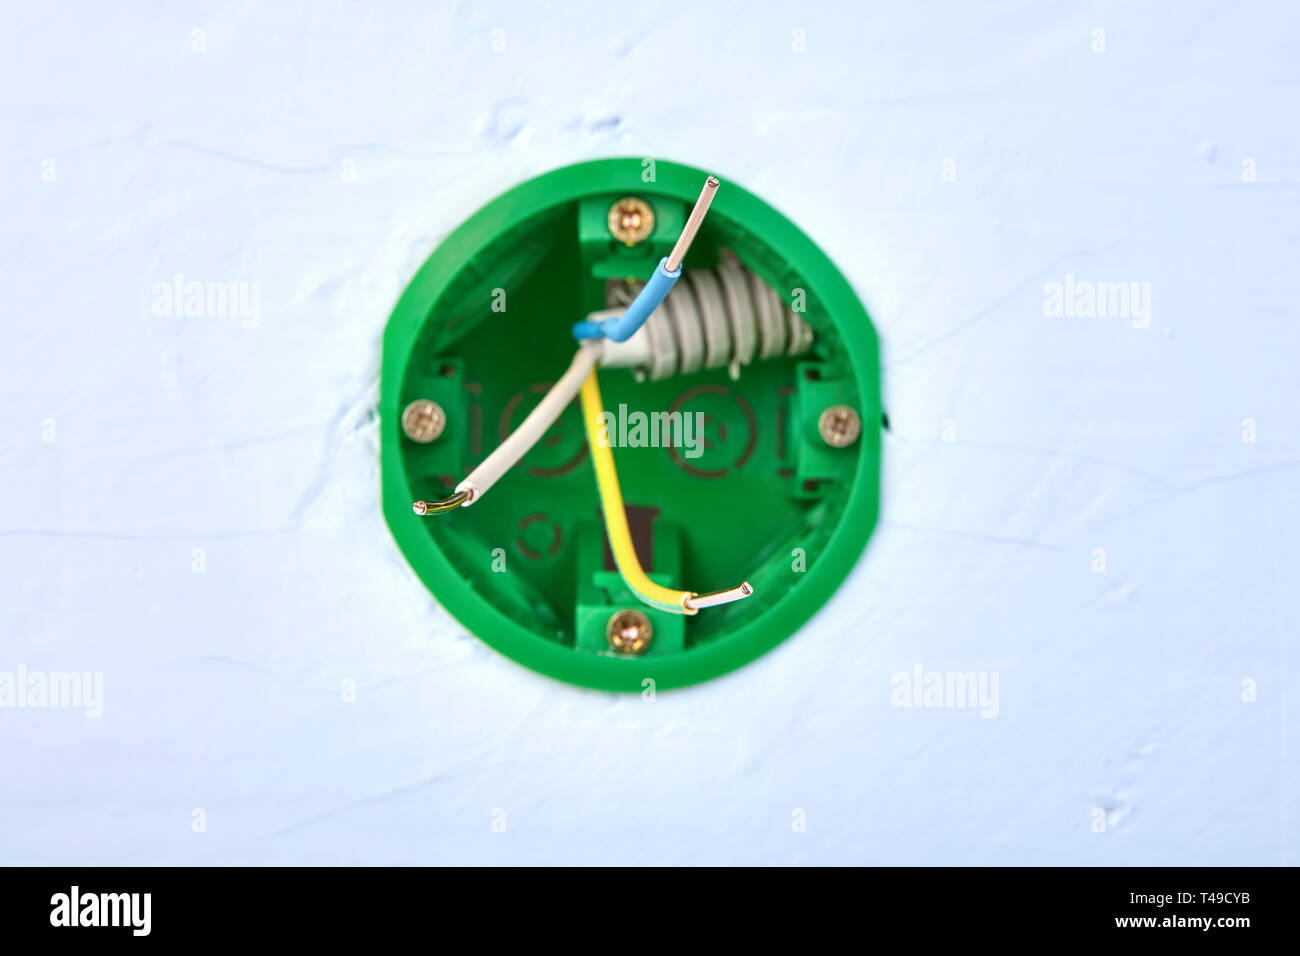 Round Electrical Box For Wall Light Switch With Copper Wires Inside Electric Installation Work Stock Photo Alamy